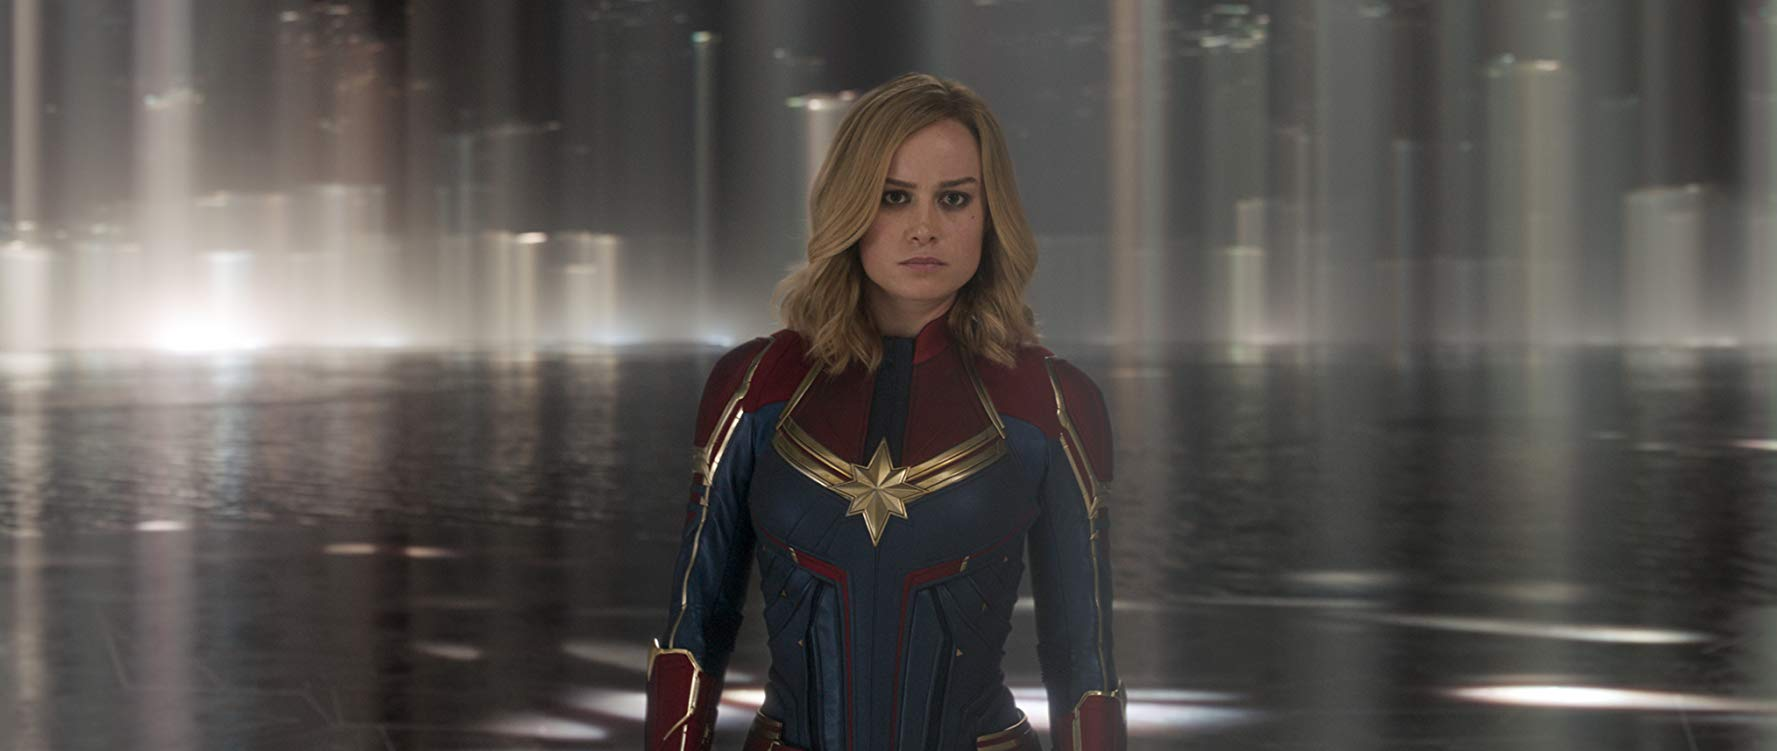 Captain Marvel Brie Larson as Carol Danvers